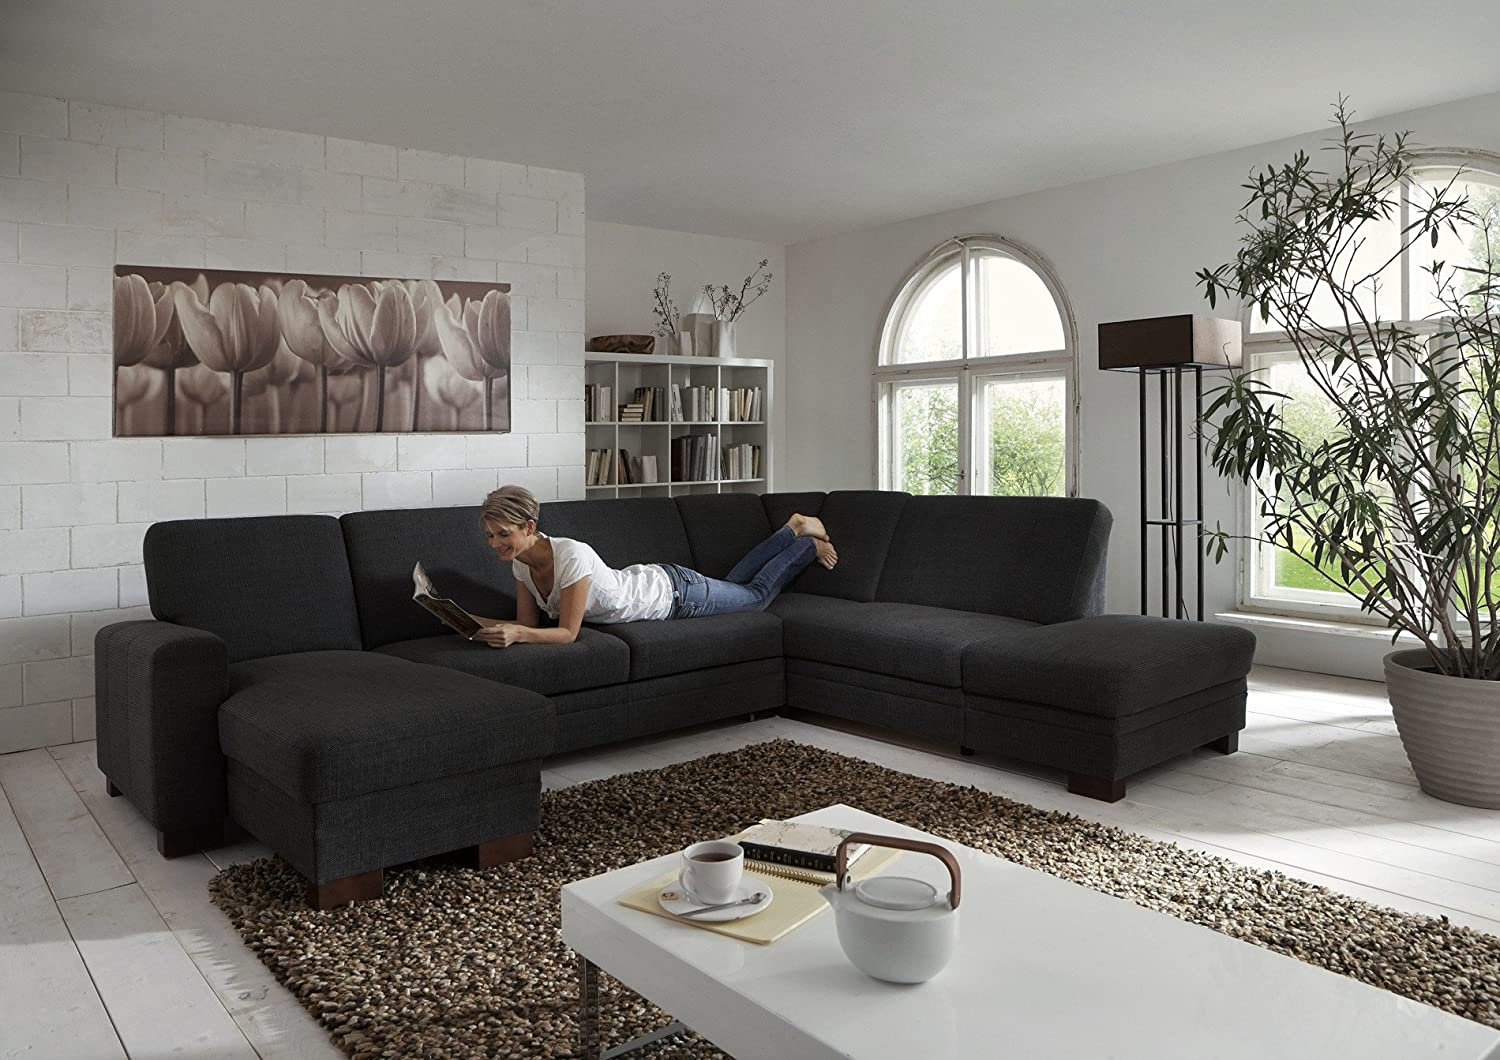 plansofa sofagarnitur sofa couchgarnitur wohnlandschaft cincinatti e zehdenick g nstig. Black Bedroom Furniture Sets. Home Design Ideas